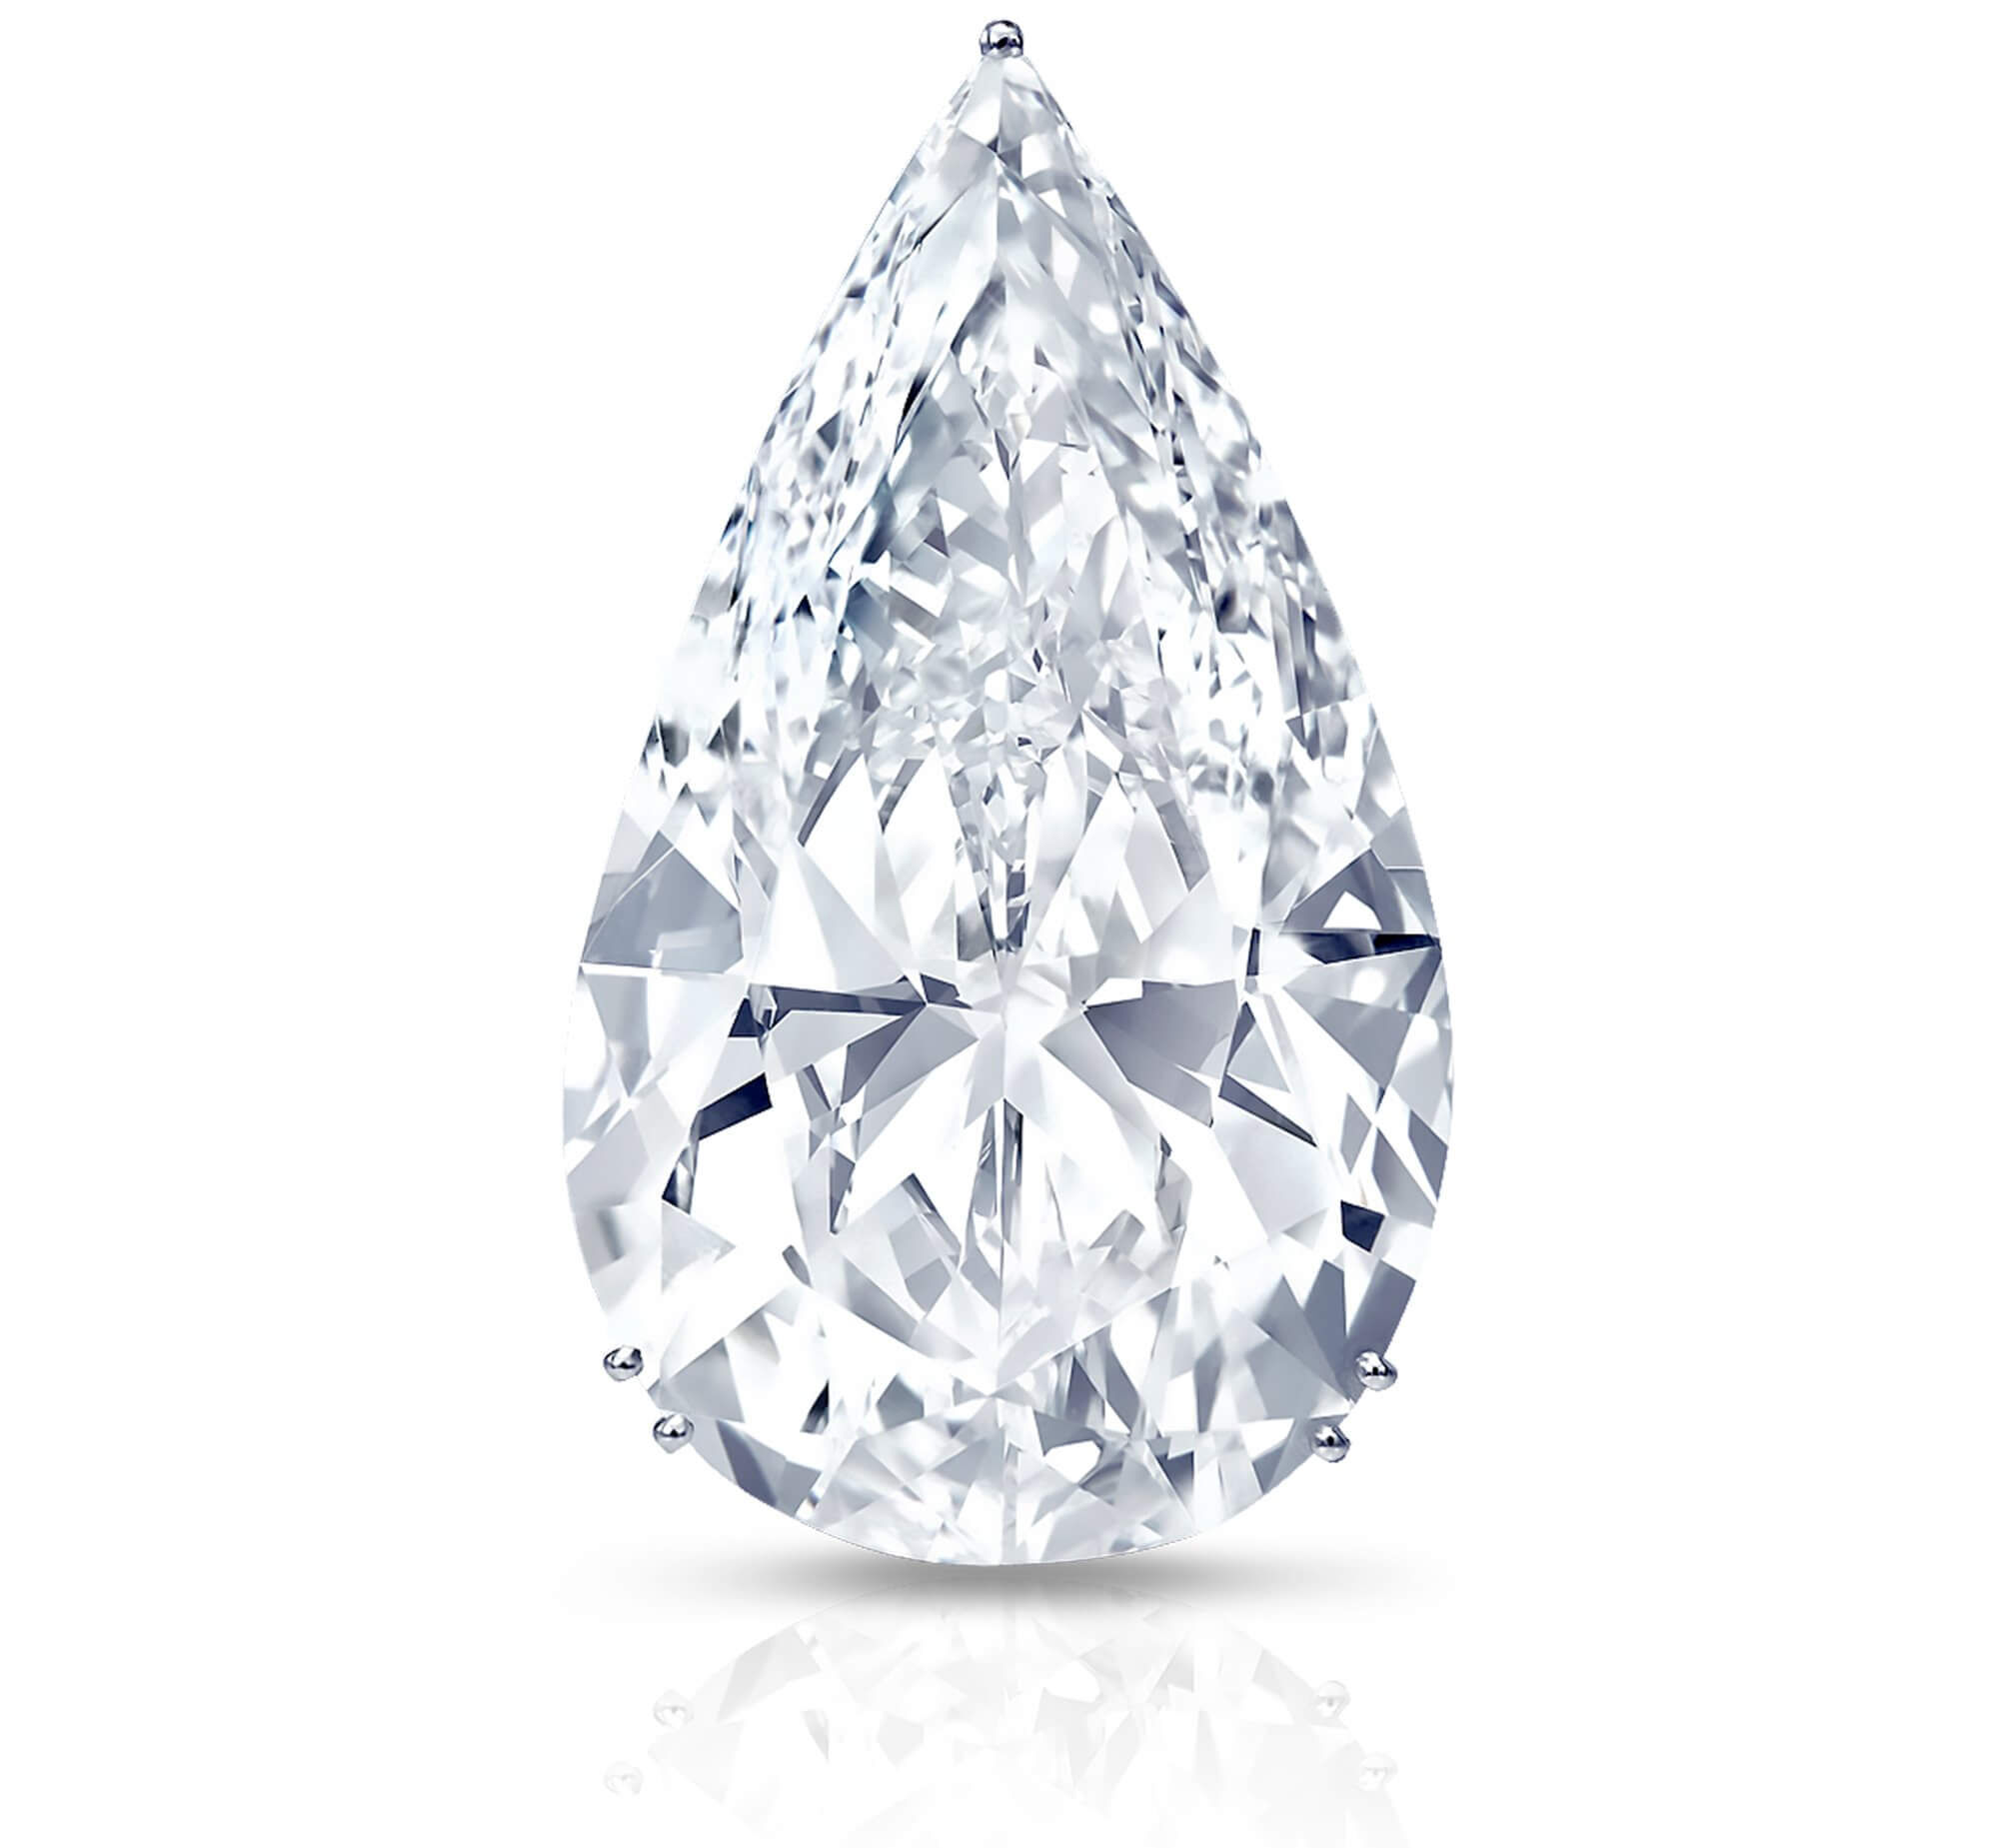 The 100 carat D flawless pear shape 'Graff Perfection' diamond